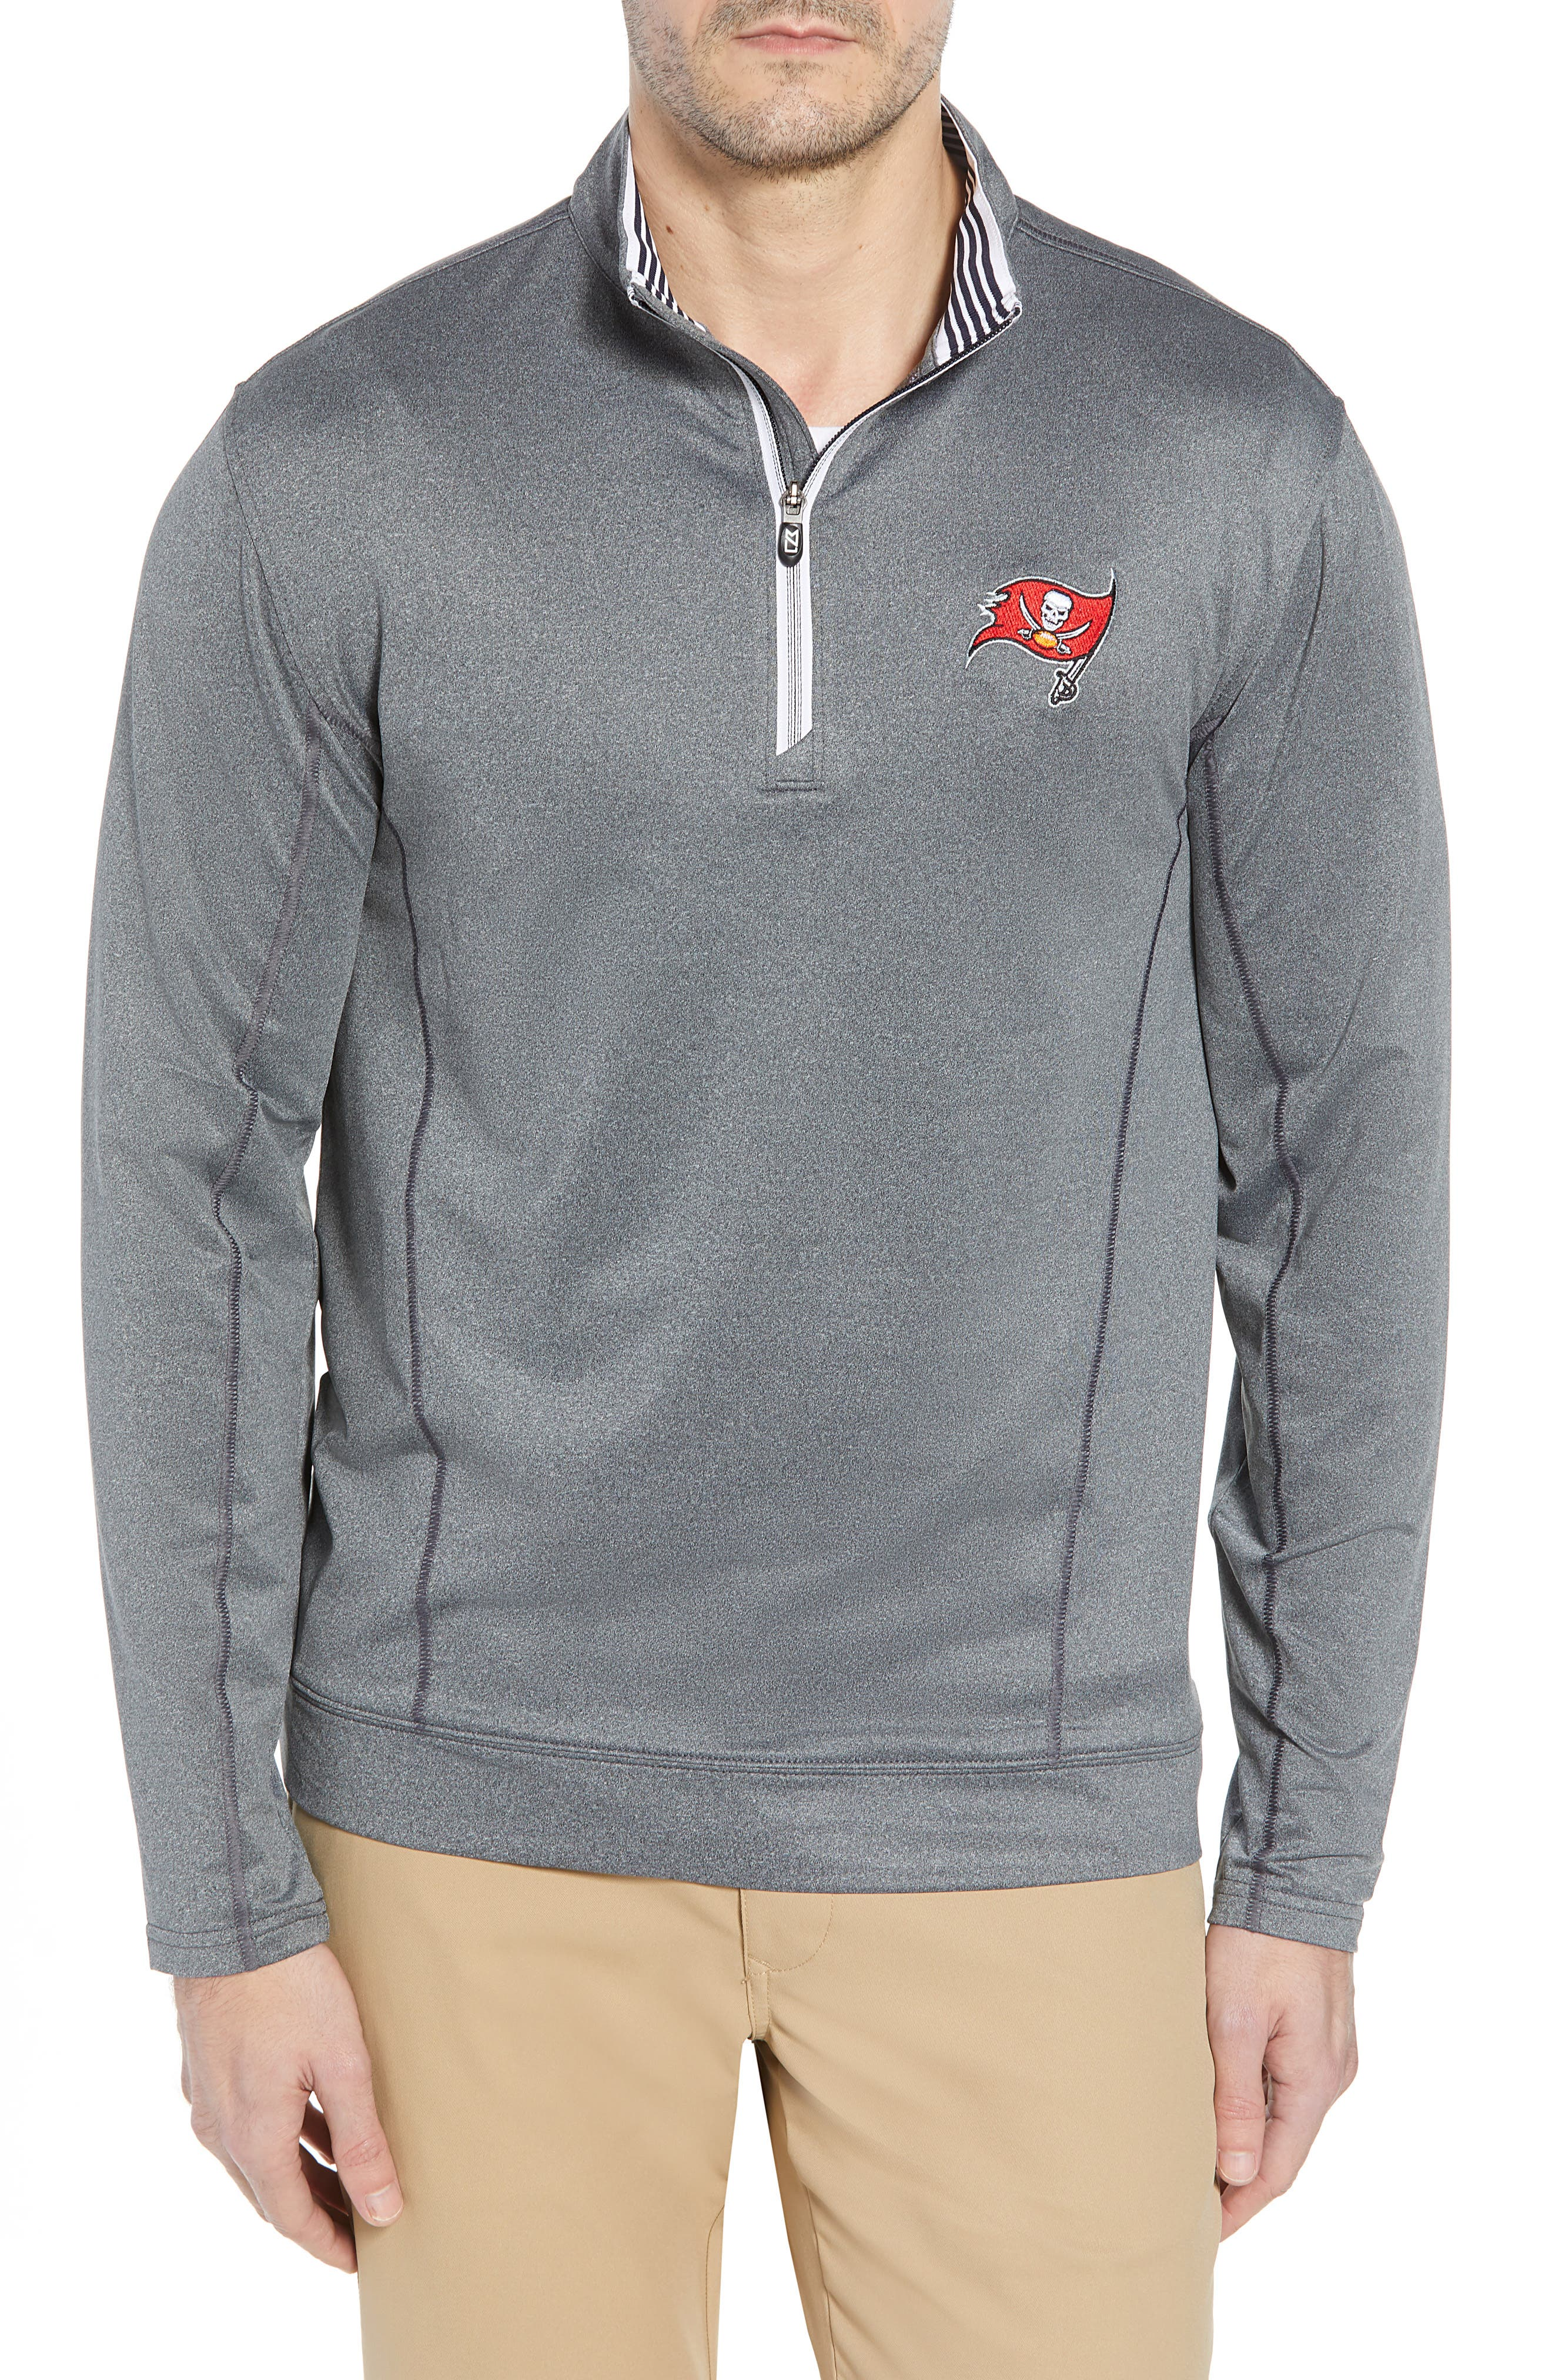 Endurance Tampa Bay Buccaneers Regular Fit Pullover,                         Main,                         color, CHARCOAL HEATHER